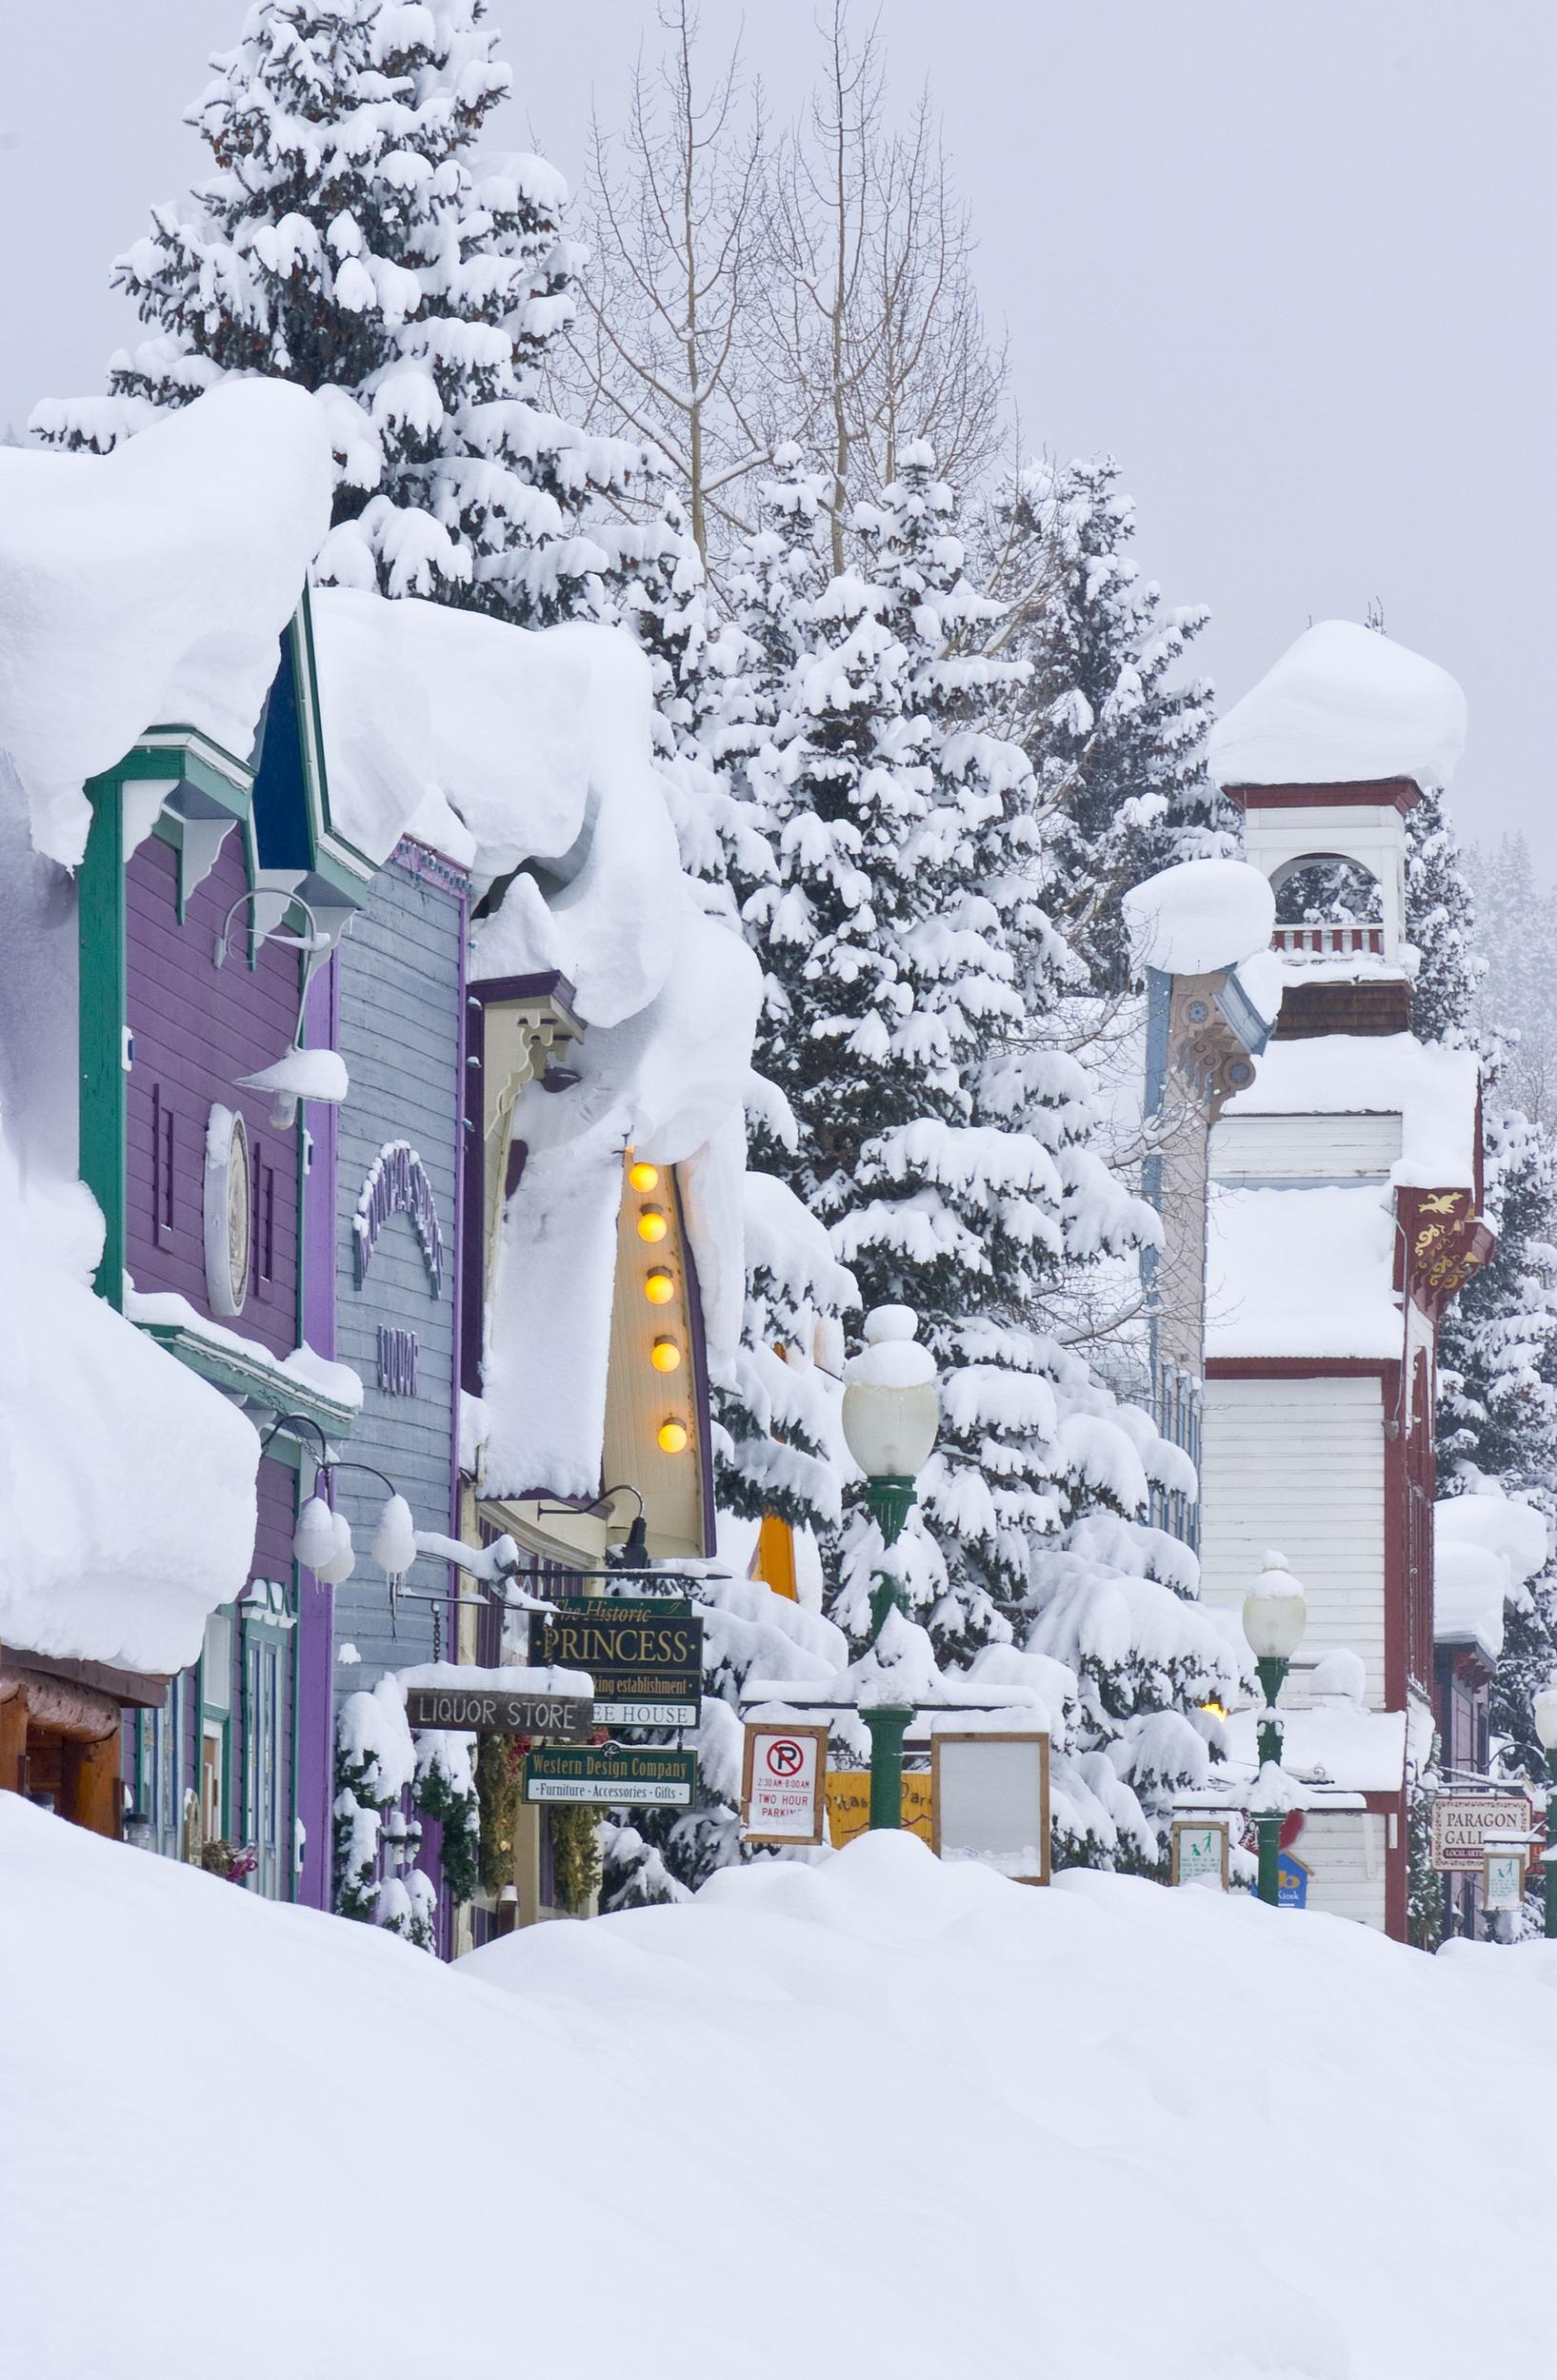 "<a href=""http://www.colorado.com/"" target=""_blank"">Colorado</a> ski resort Crested Butte's Elk Avenue covered in snow."